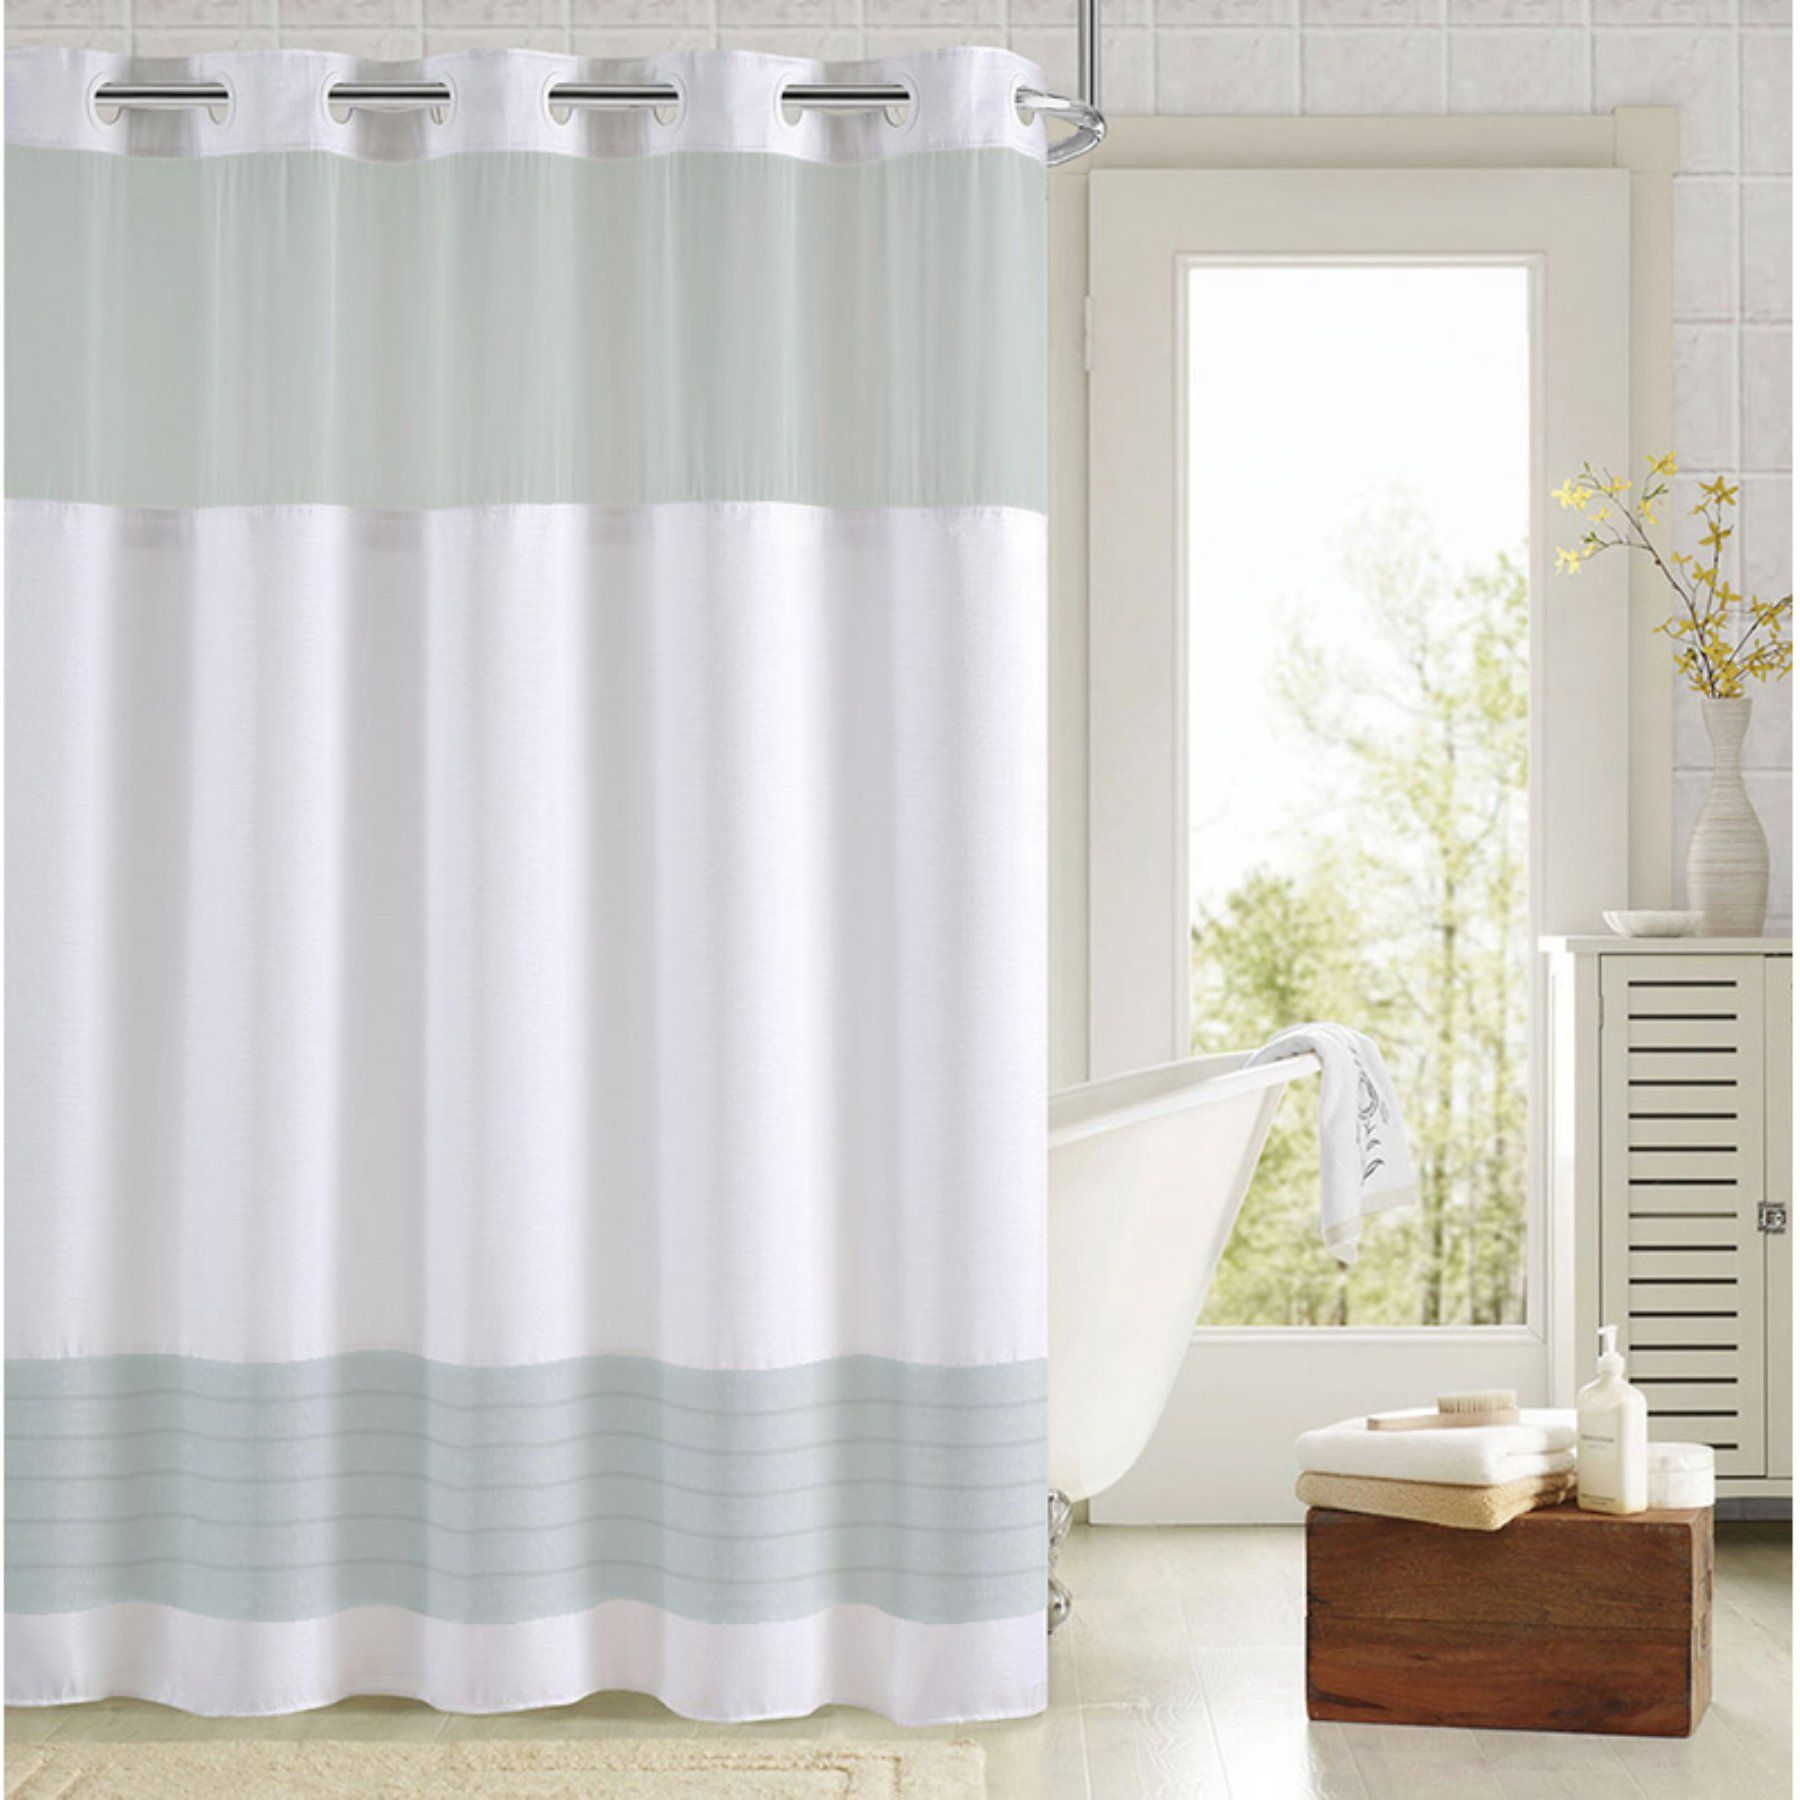 Hookless Colorblock Shower Curtain With Snap On Liner Rbh88my262